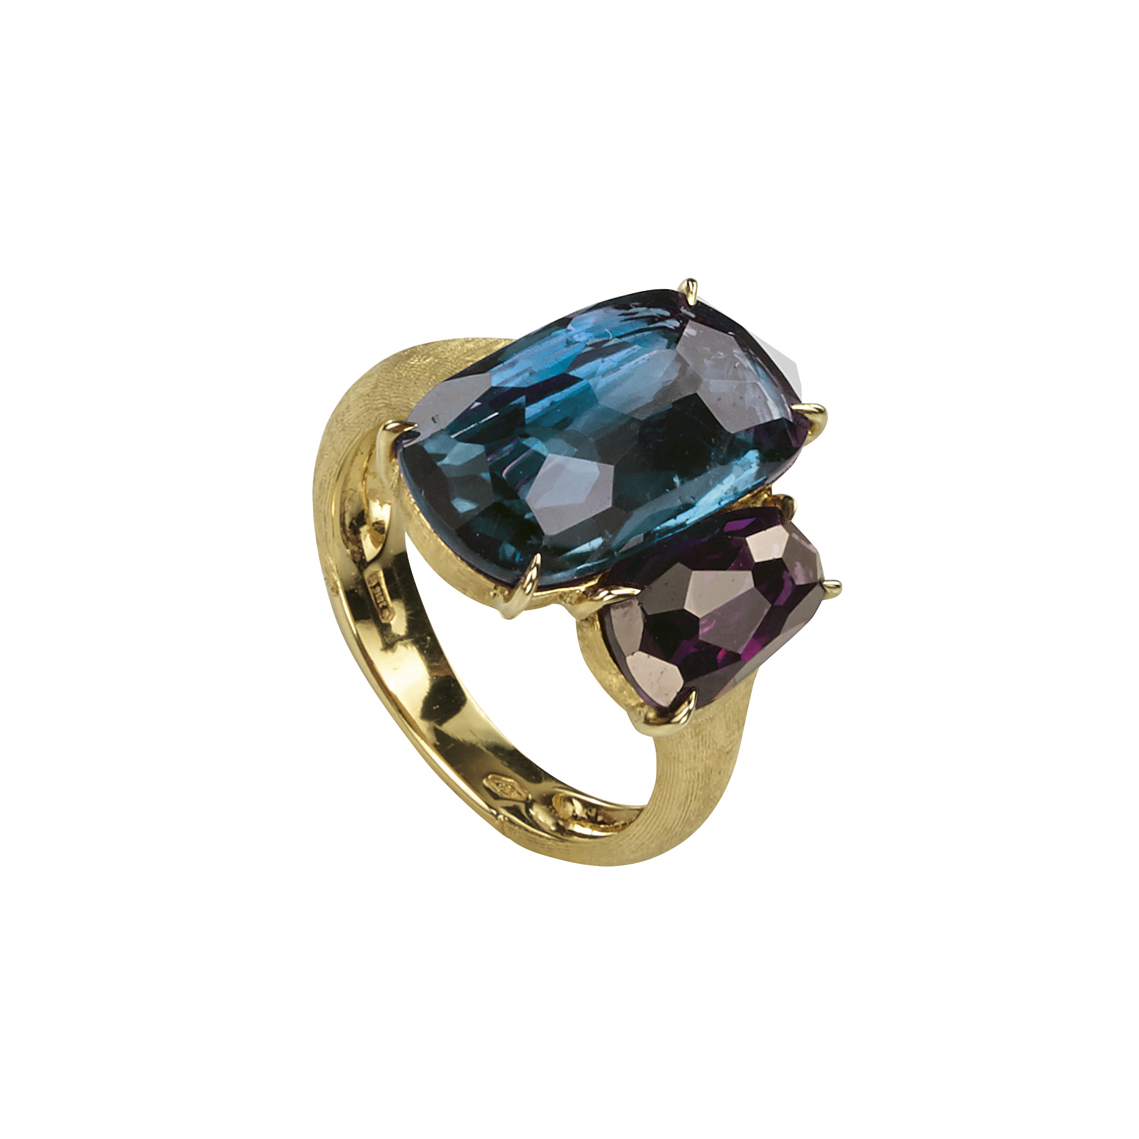 Marco Bicego Murano Two-Stone Ring